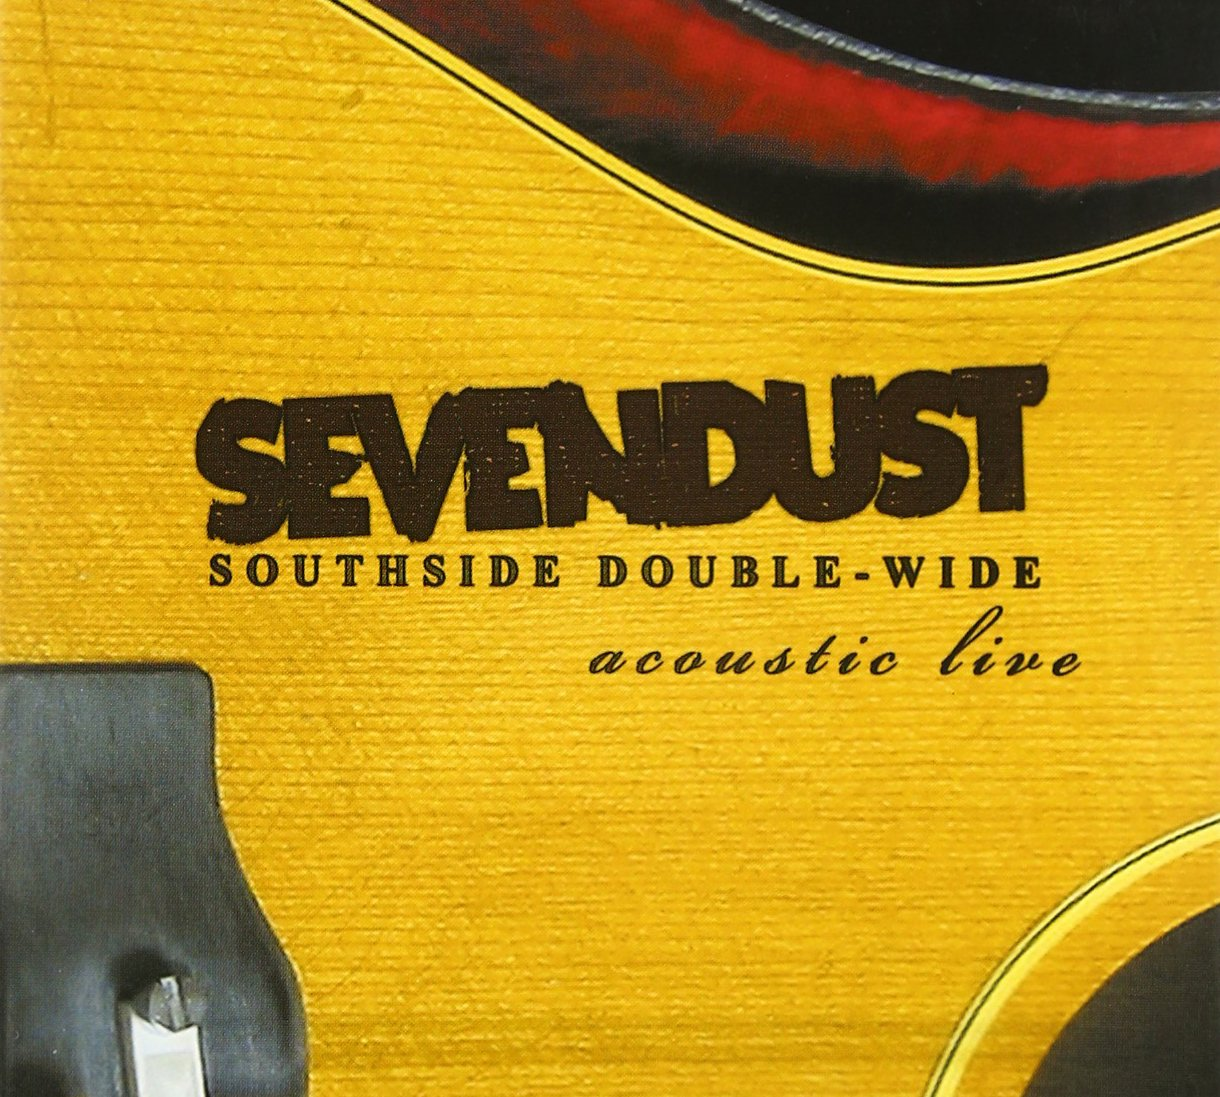 Southside Double-Wide Acoustic Live